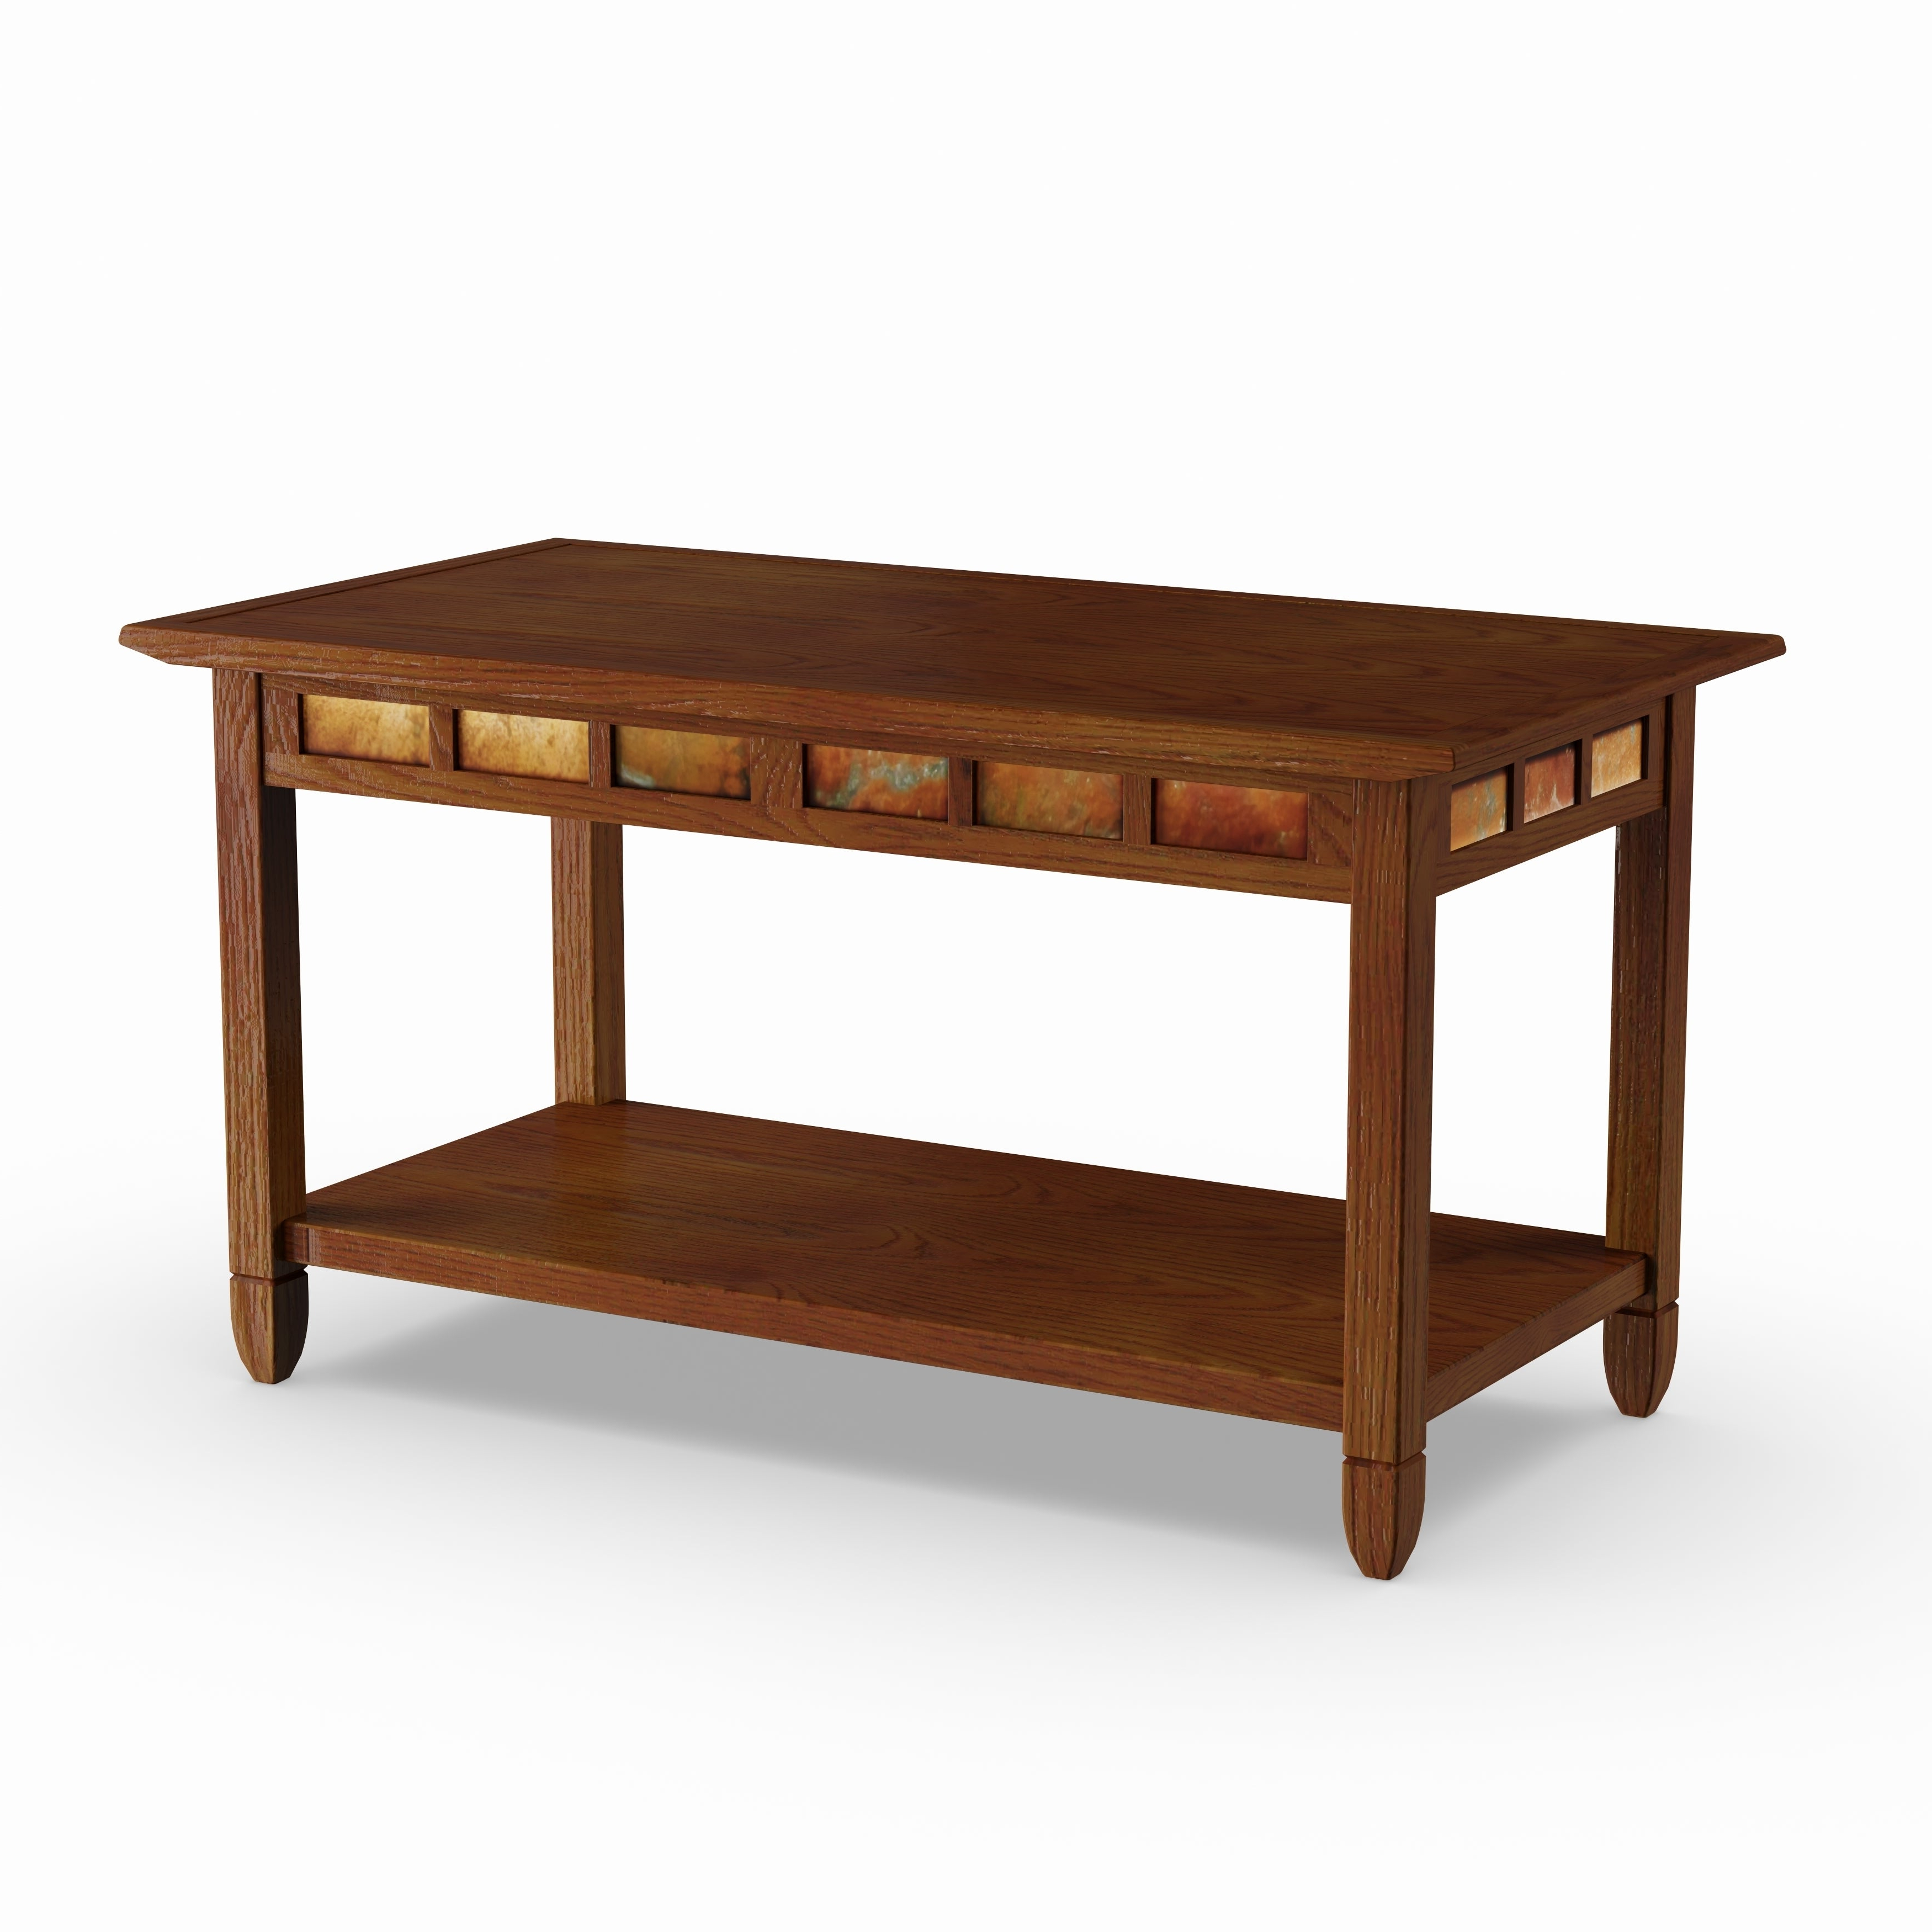 Featured Photo of Copper Grove Ixia Rustic Oak And Slate Tile Coffee Tables